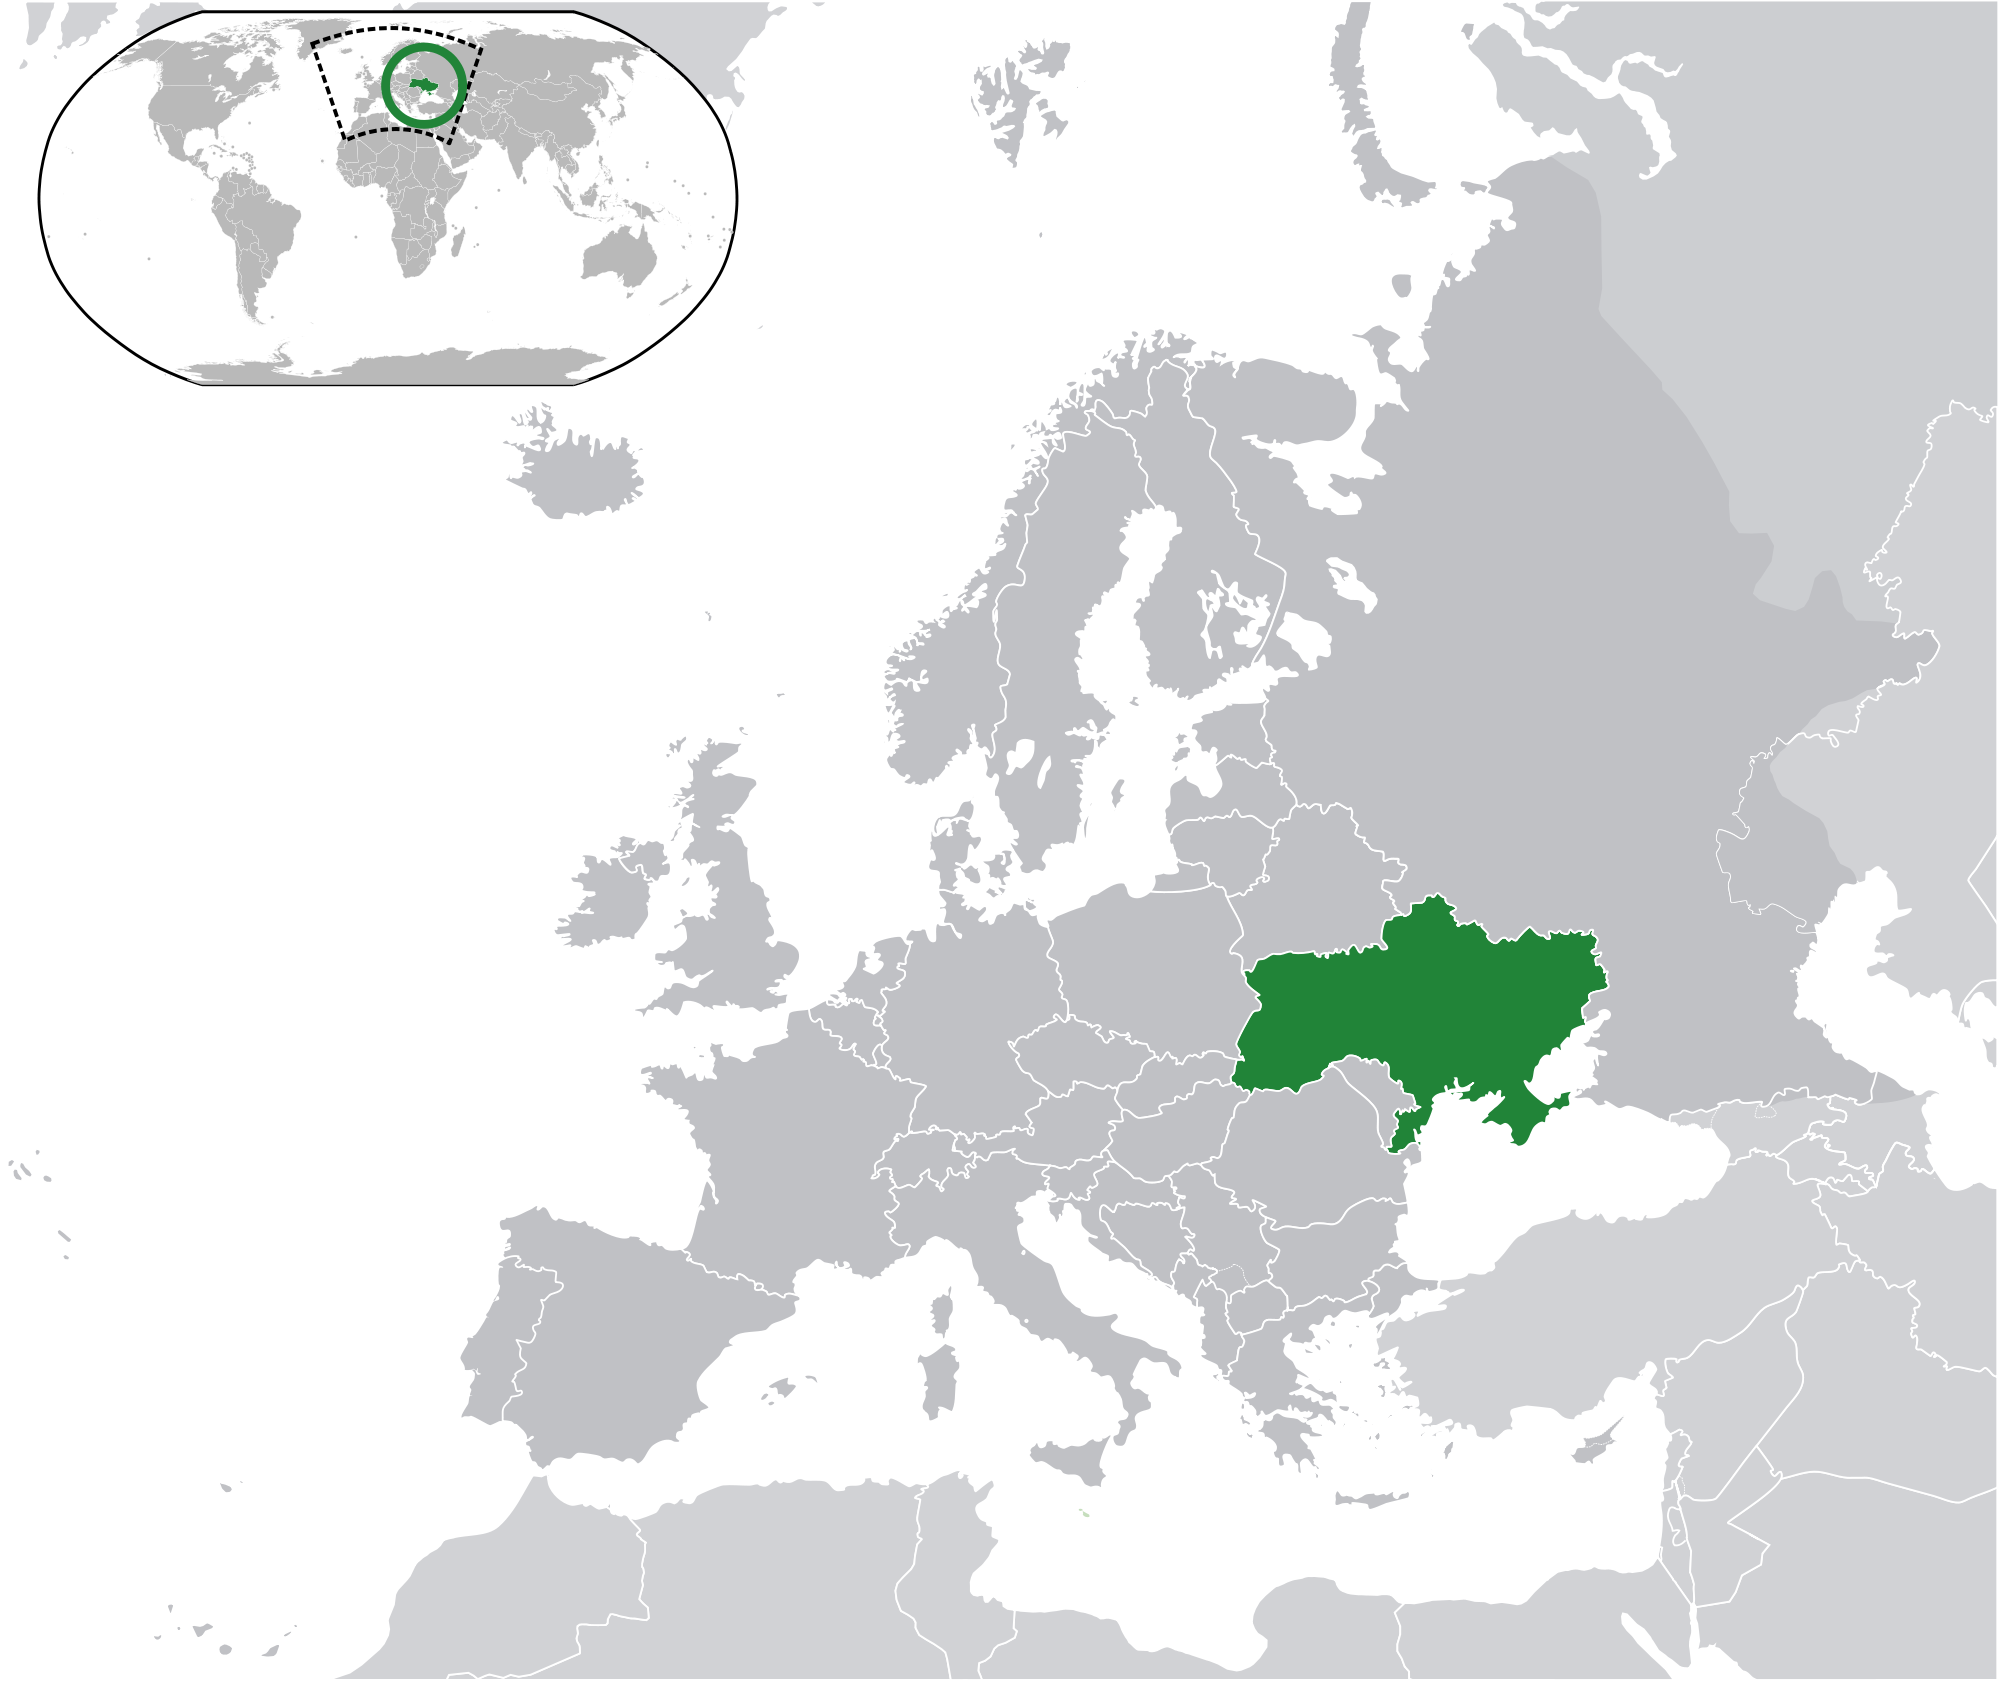 Location of the Ukraine in the World Map